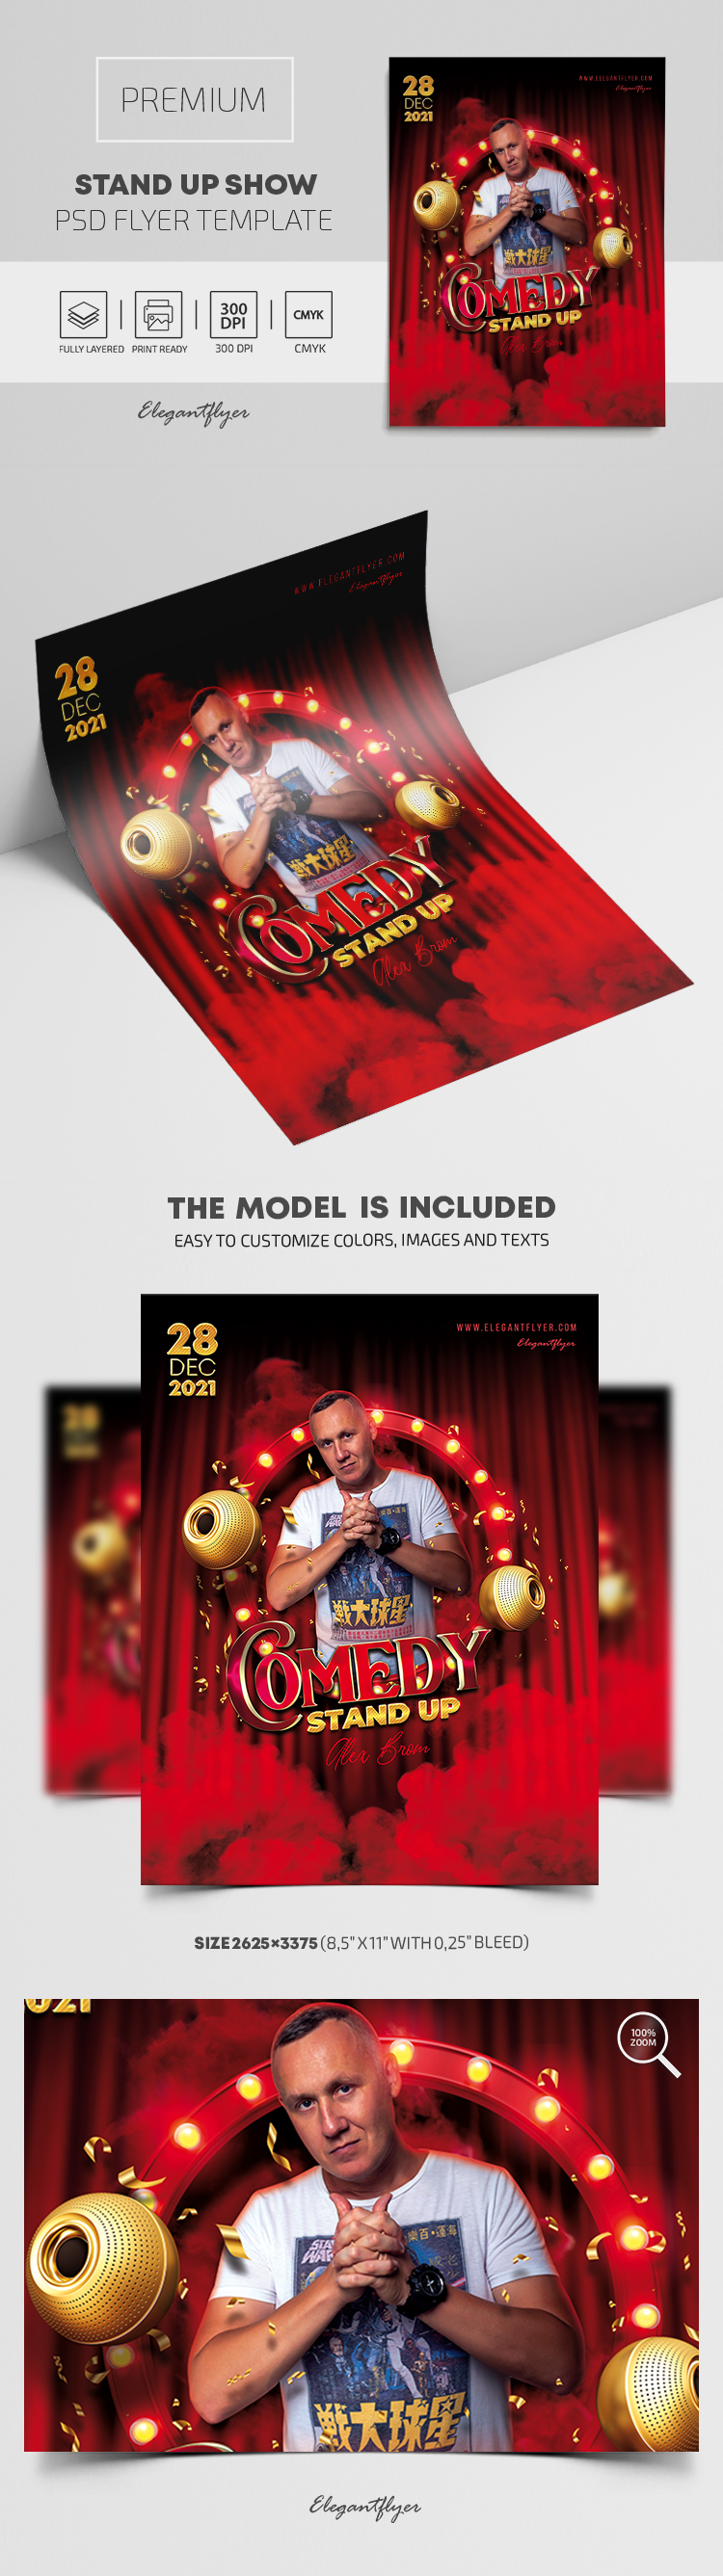 Stand Up Show – Premium PSD Flyer Template